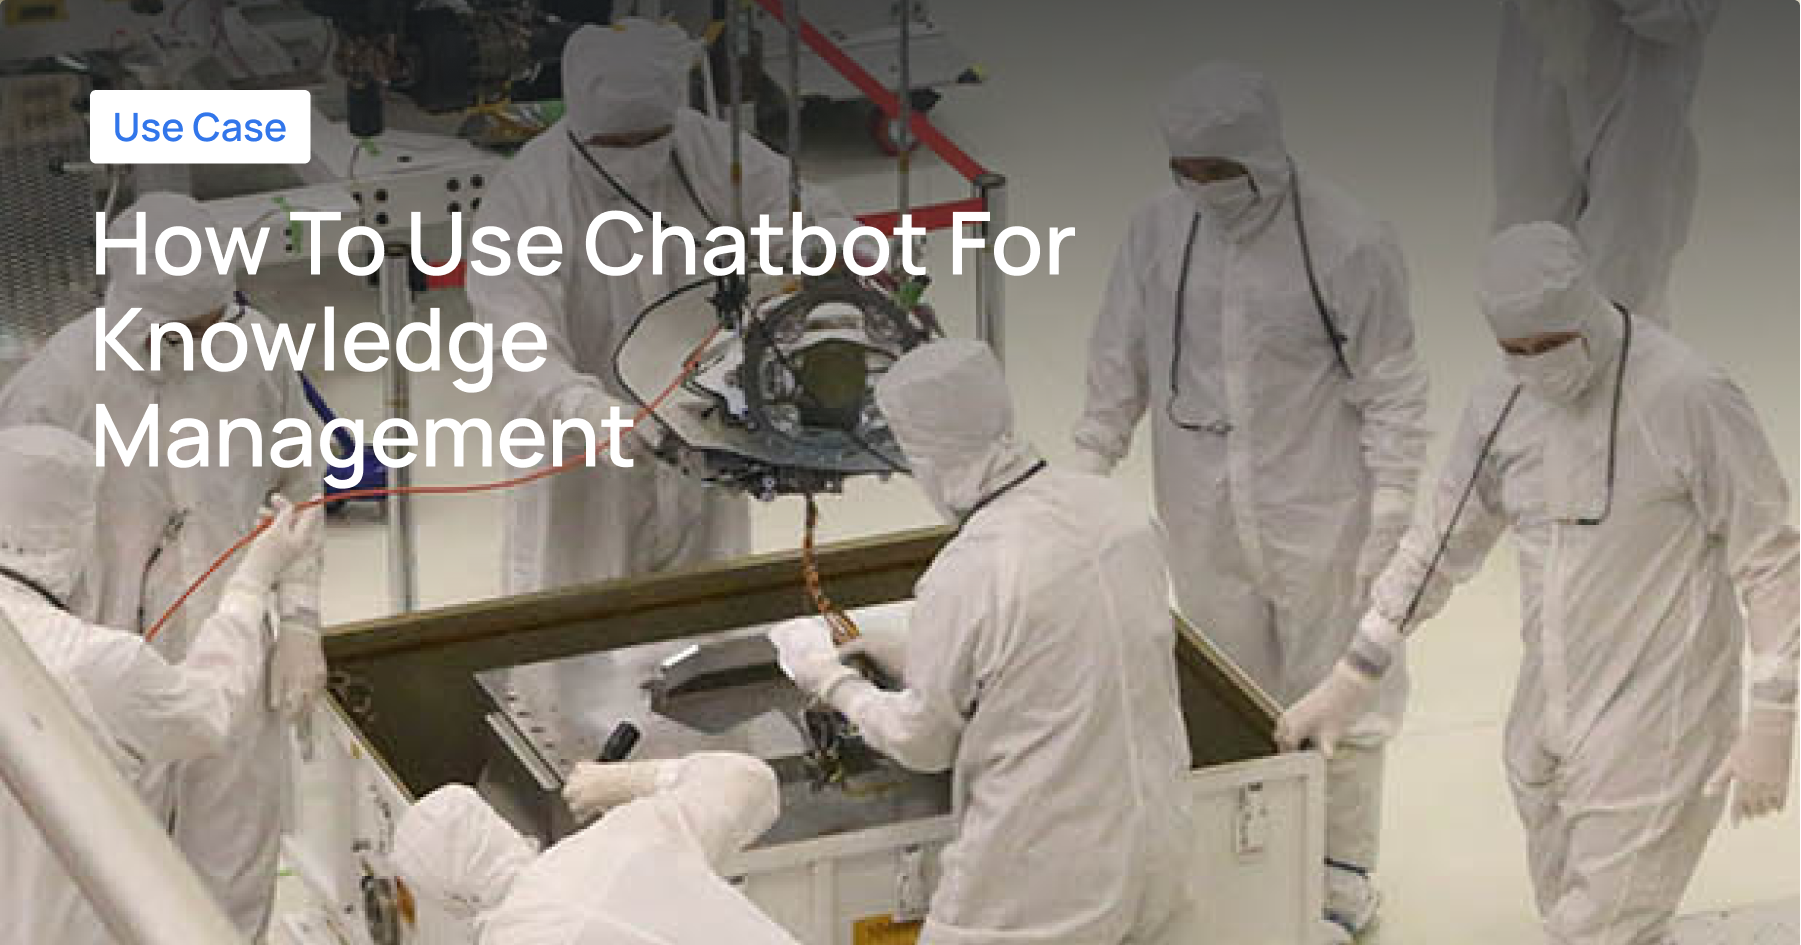 Chatbot for Knowledge Management in Manufacturing